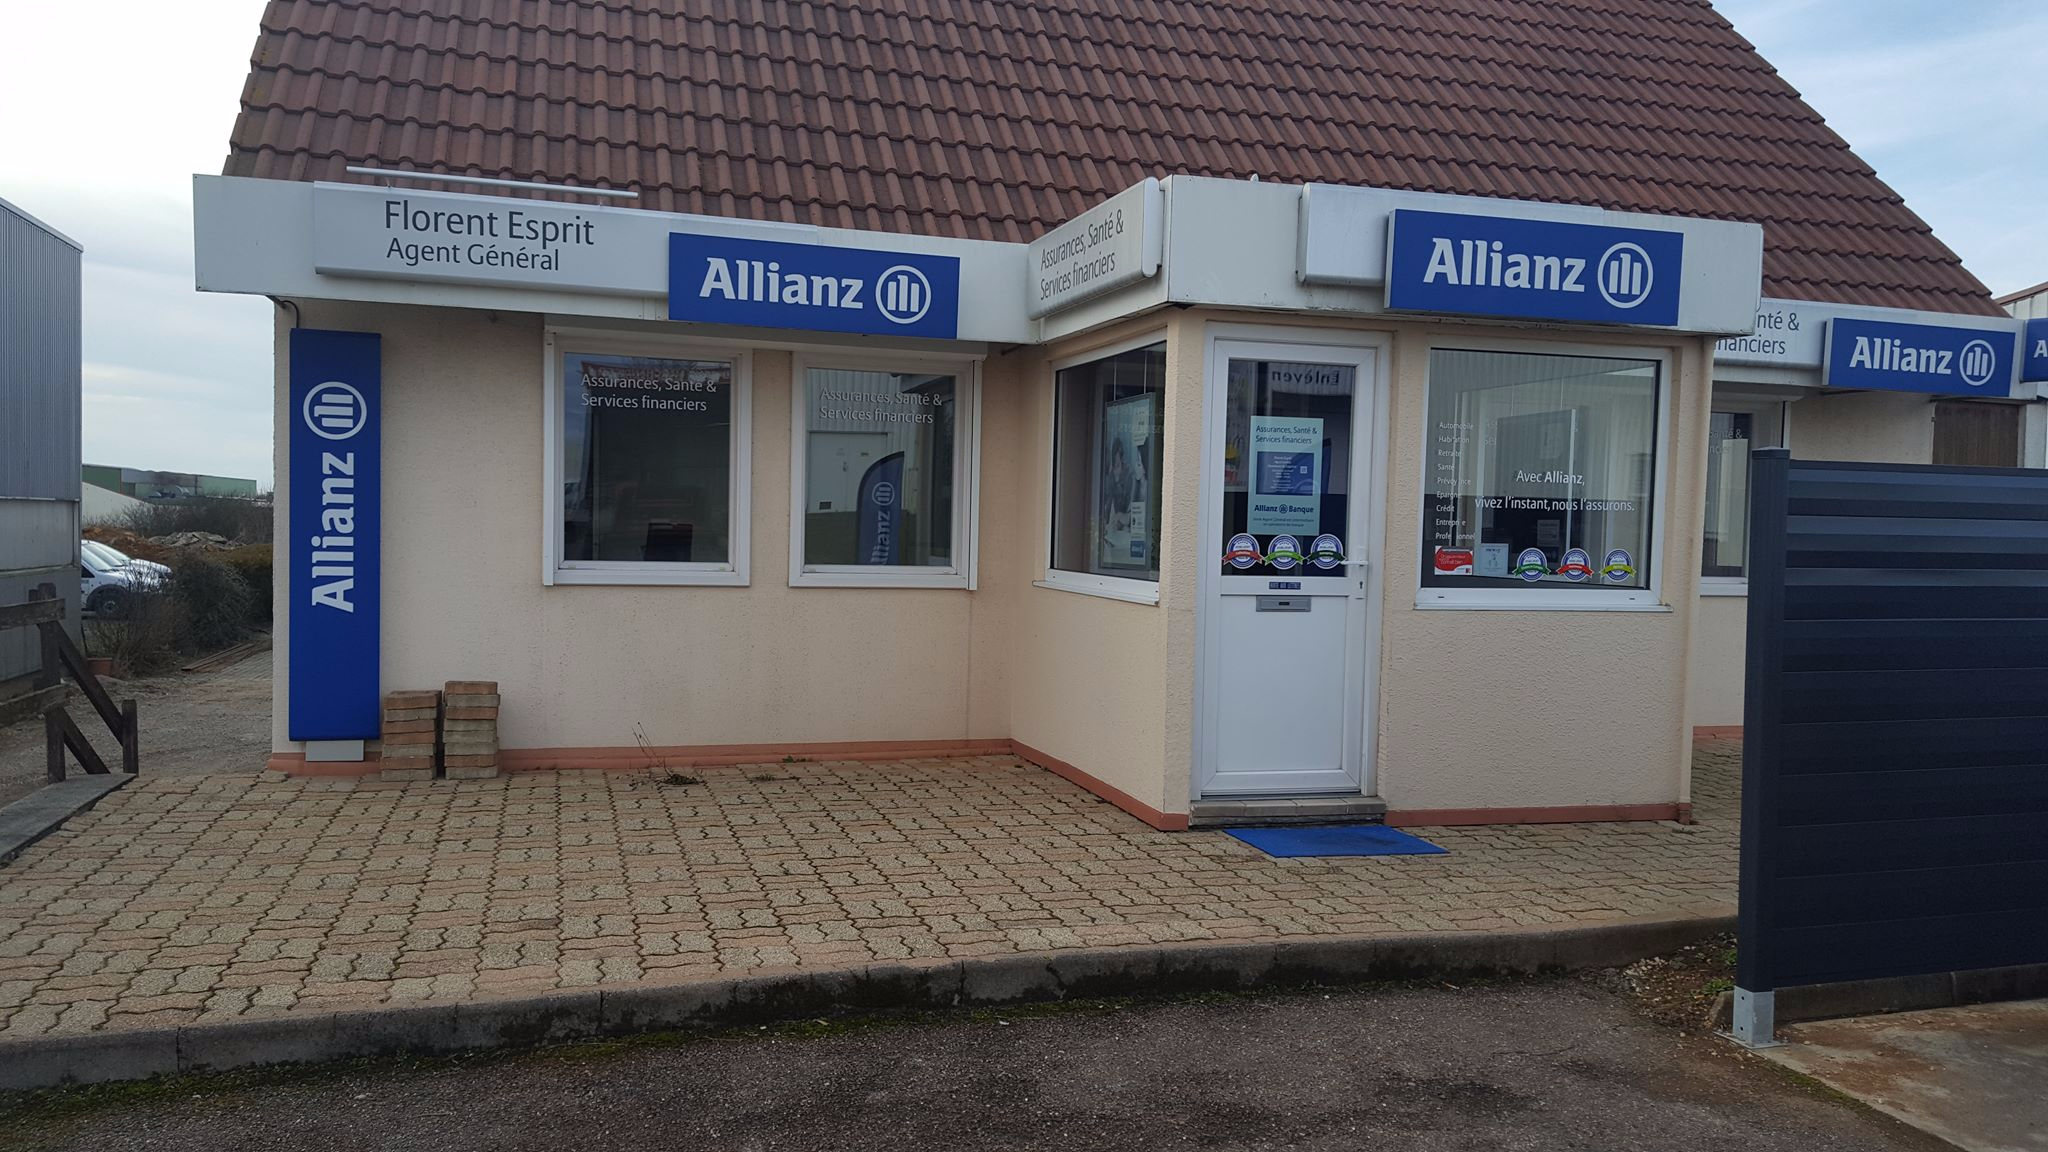 Allianz Langres saint geosmes - Florent ESPRIT